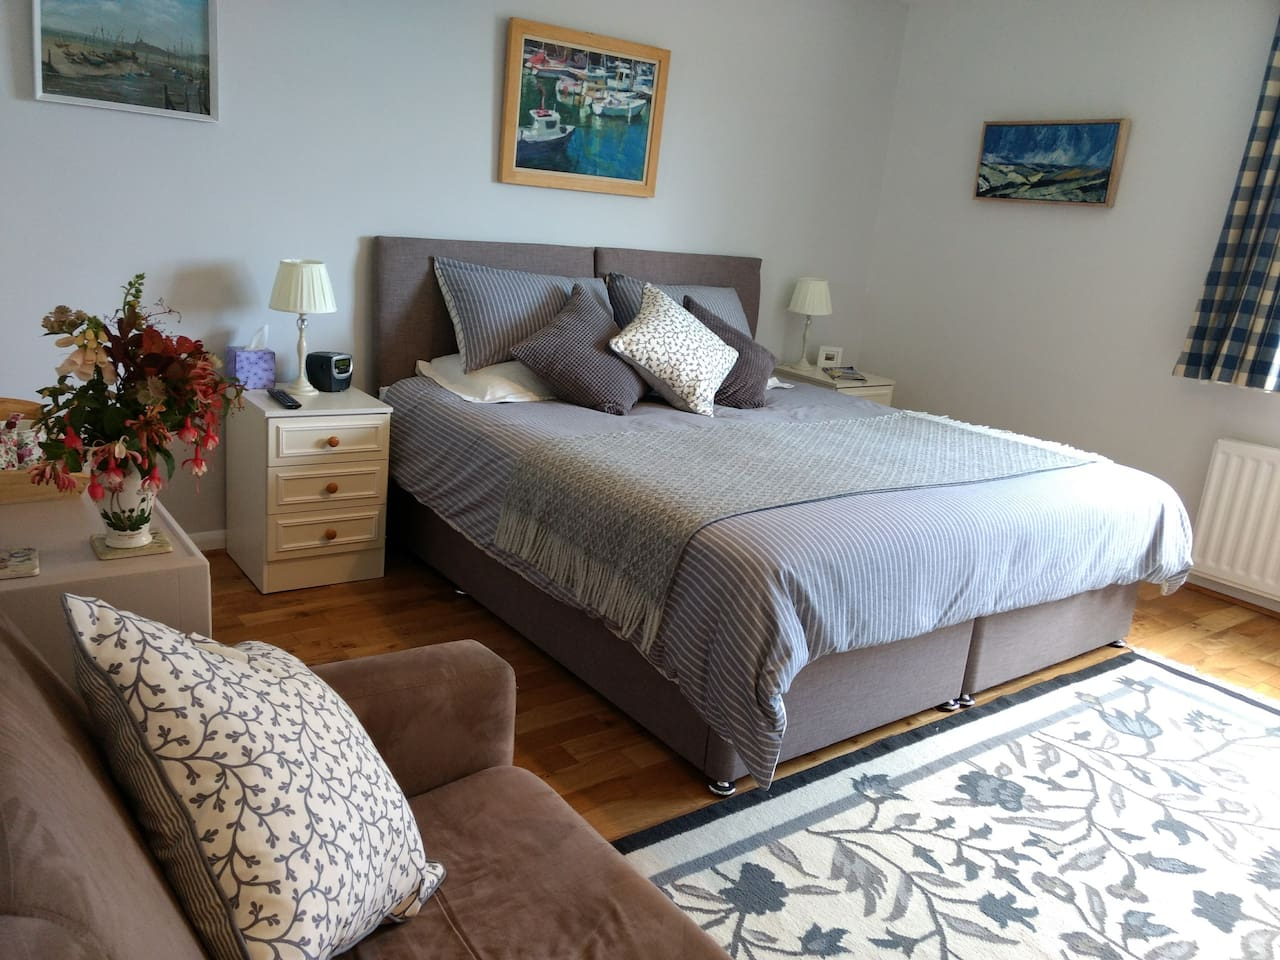 Our stylish Curlew Room offers flexible family accommodation with a sumptuous super-king bed that splits to make twins, plus comfy double sofabed.